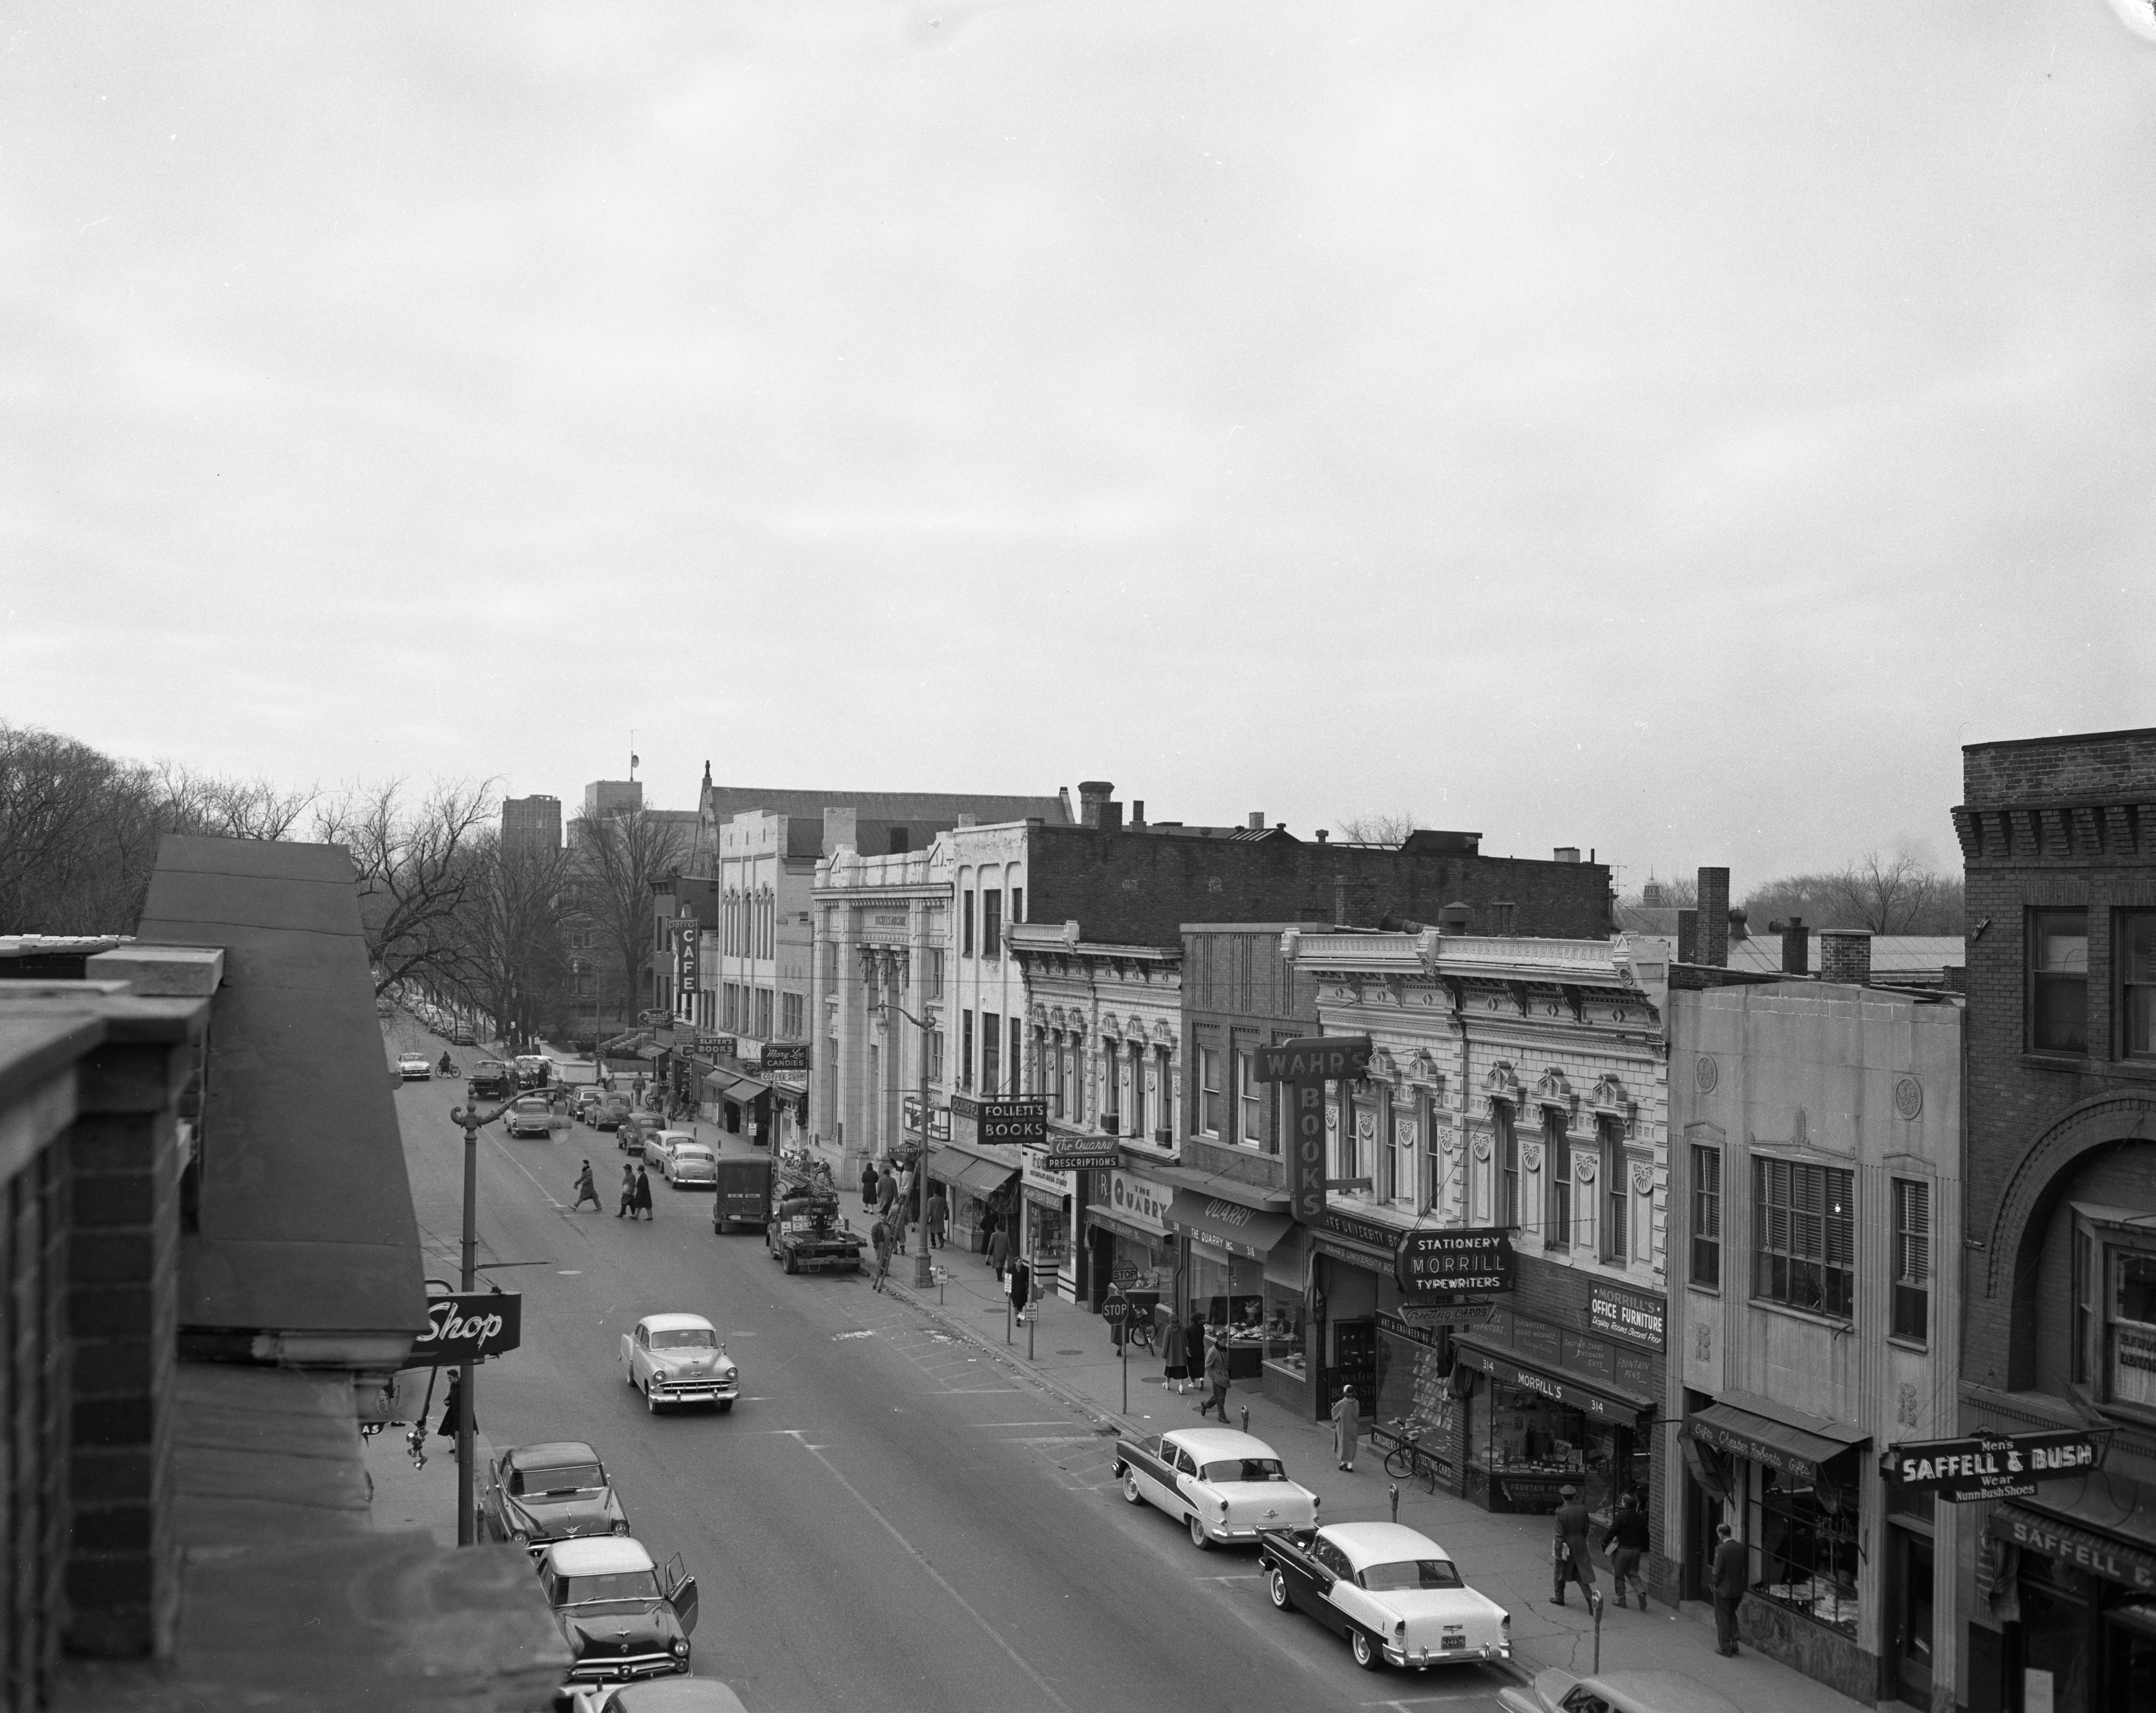 State Street business section from the roof of Wagner's, October 1955 image